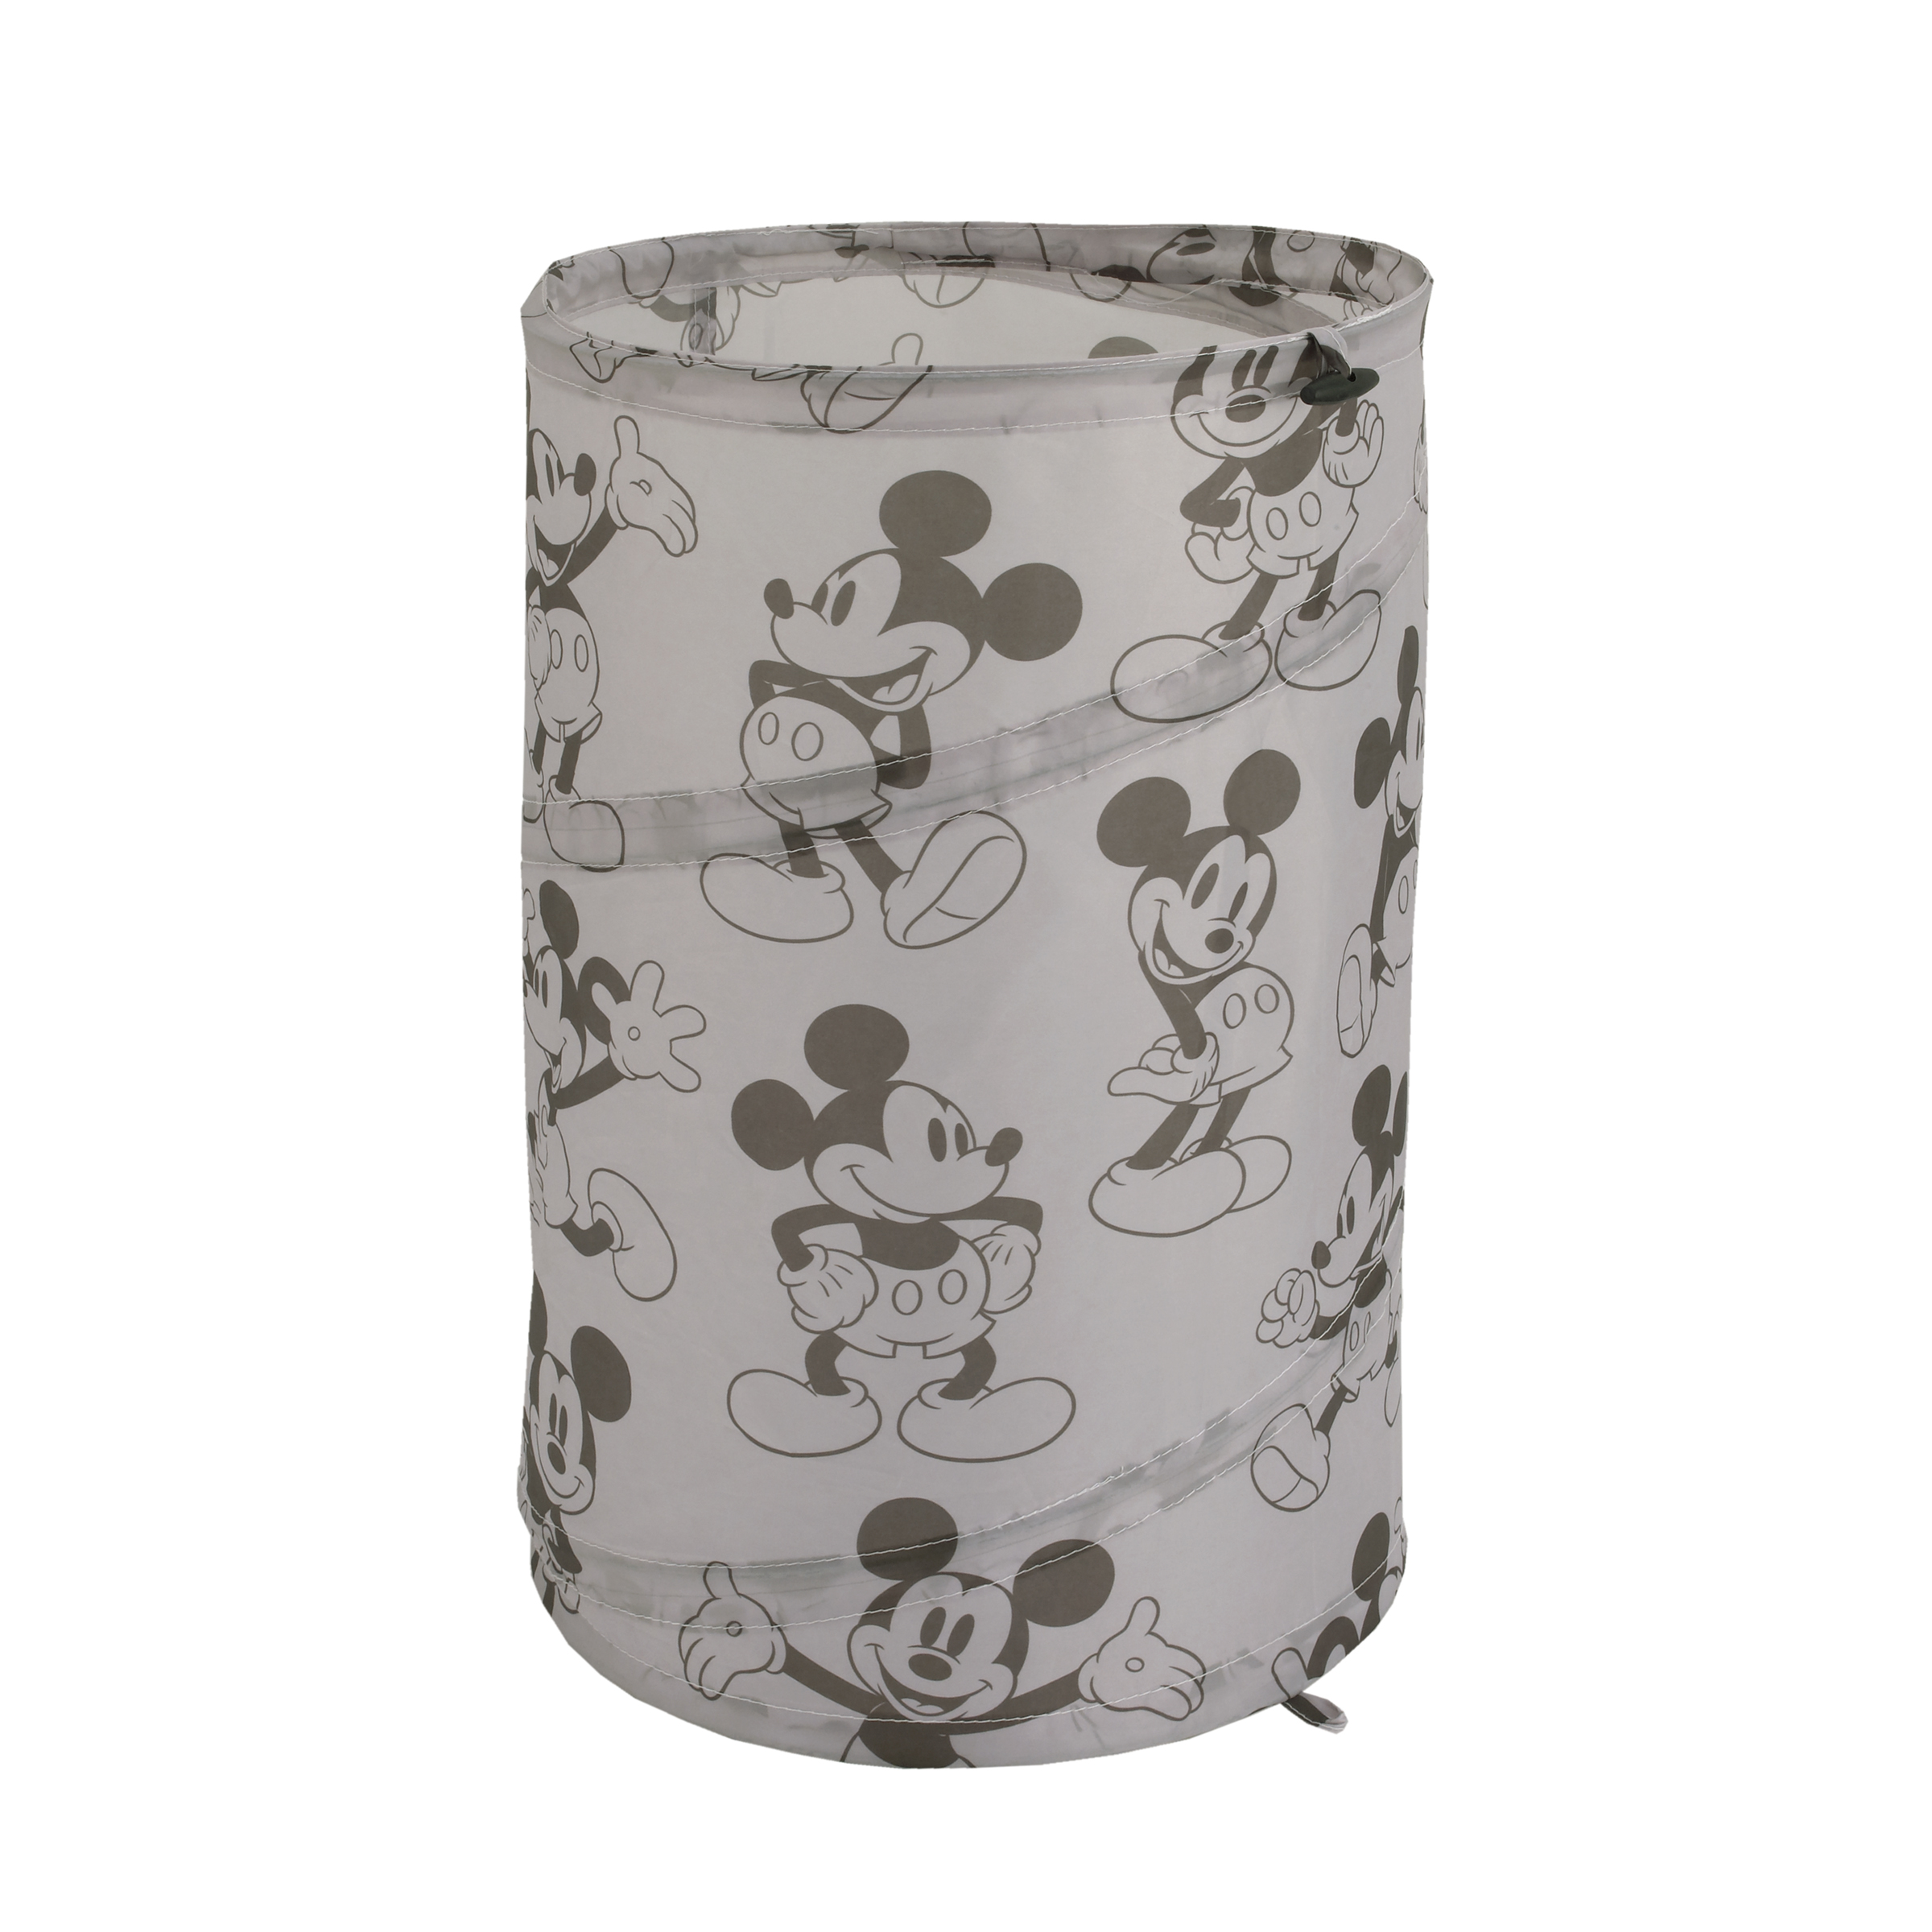 Disney Mickey Mouse Round Pop-Up Hamper, Grey & Black